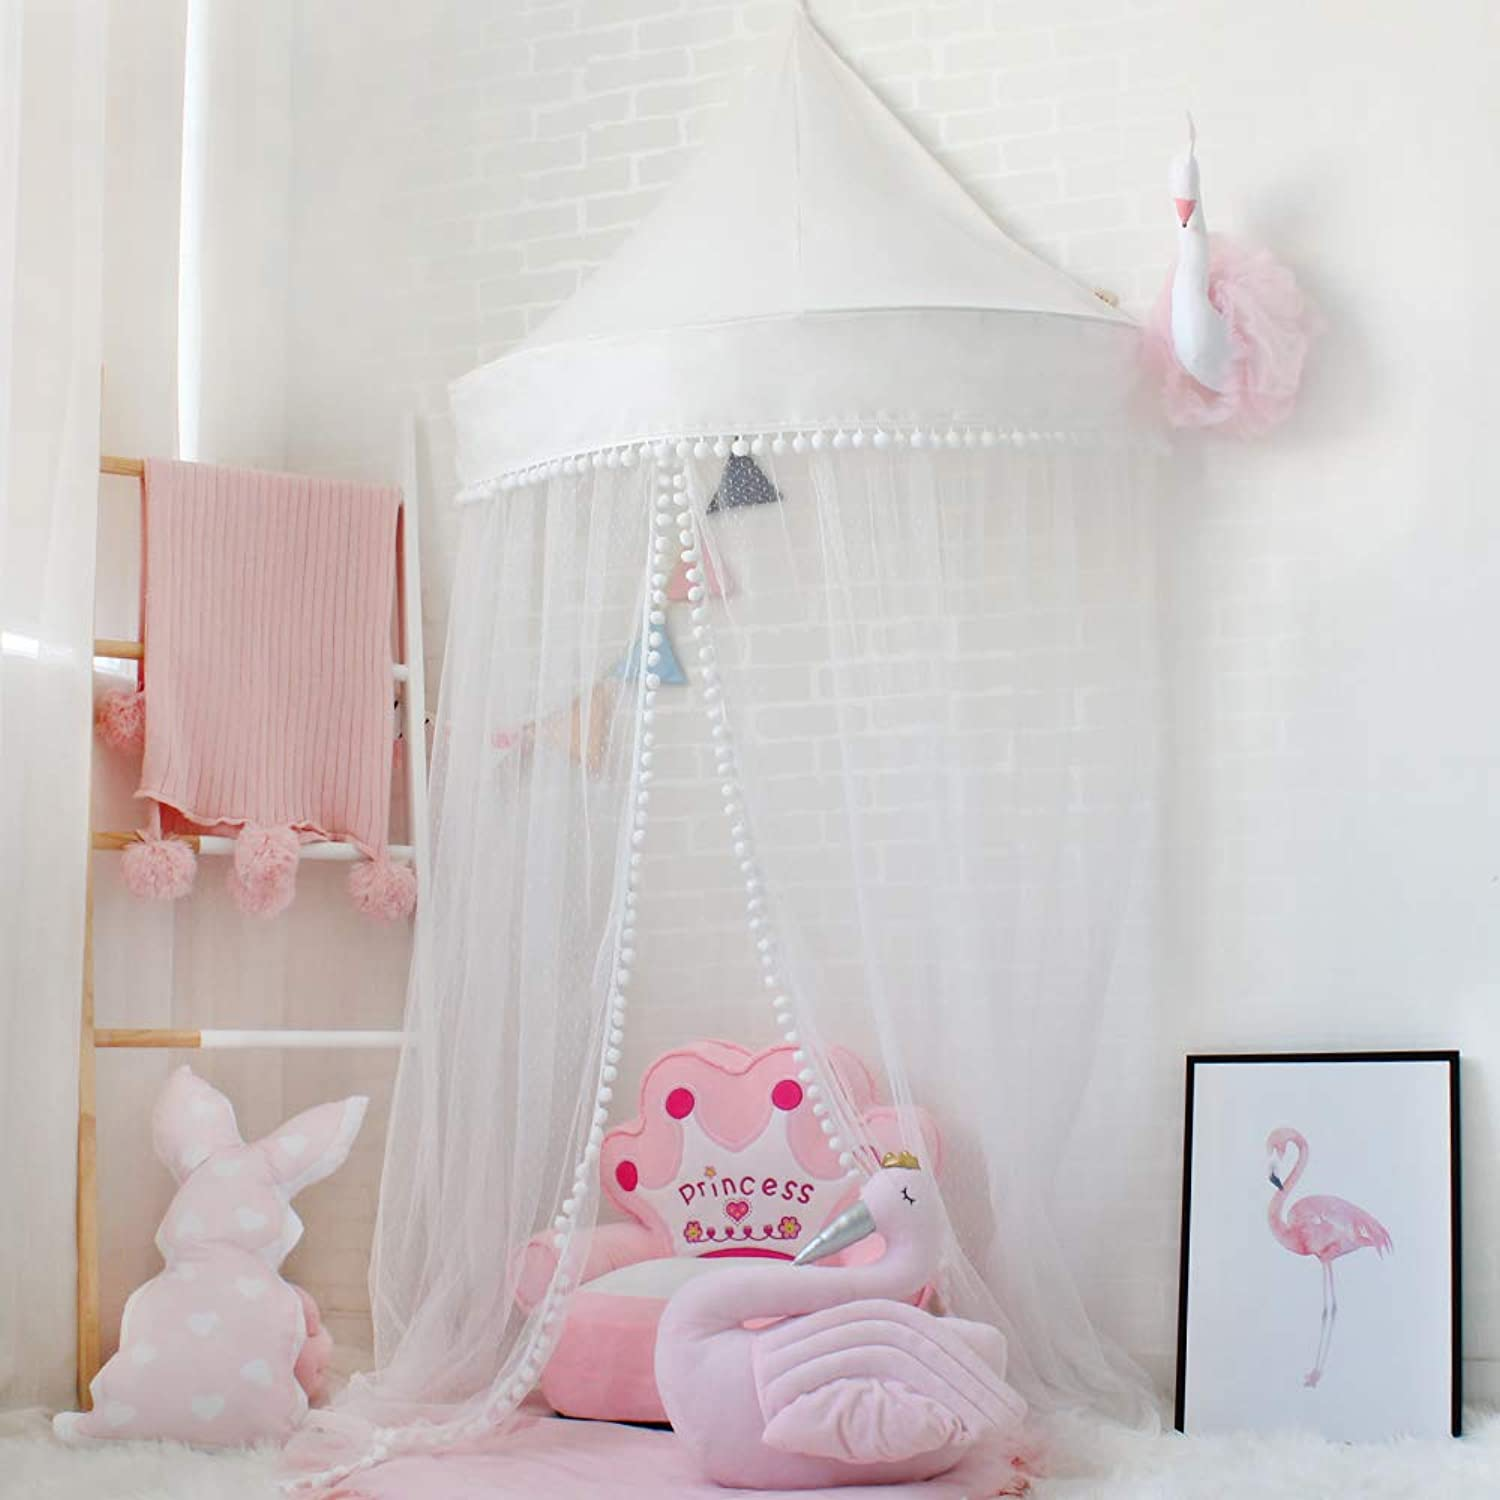 Lebze Princess Girls Bed Canopy, Crib Canopy Dome Castle, Fairy Net for Kids Bed, Kids Play Tent Castle, Reading Nook Canopy for Girls, Babies & Toddlers Diameter 100cm   39.4inch